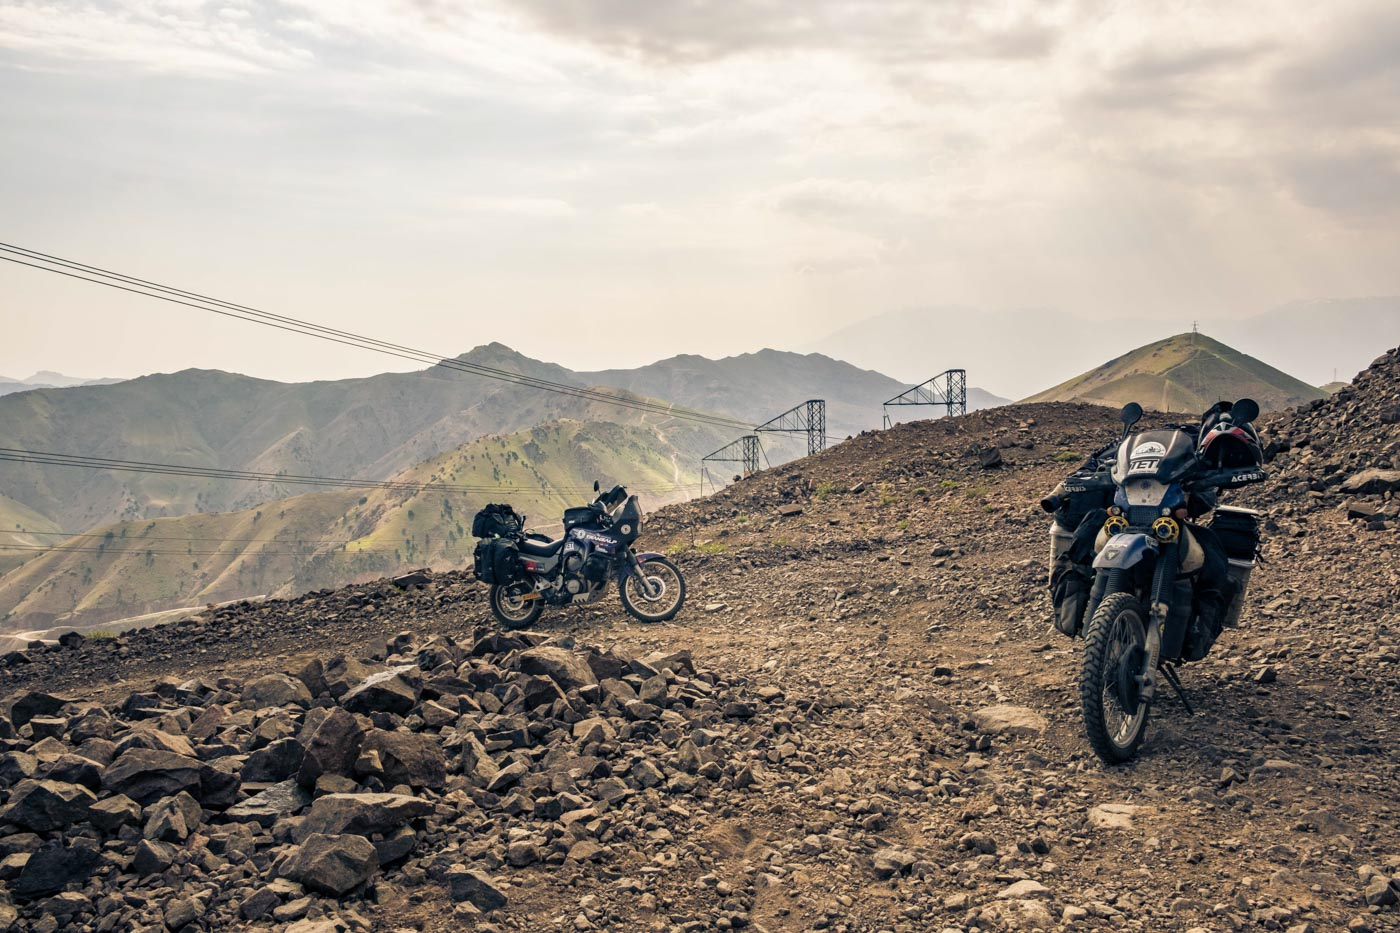 GIVI S300 SAFETY KIT IDEAL FOR MOTORCYCLING ABROAD